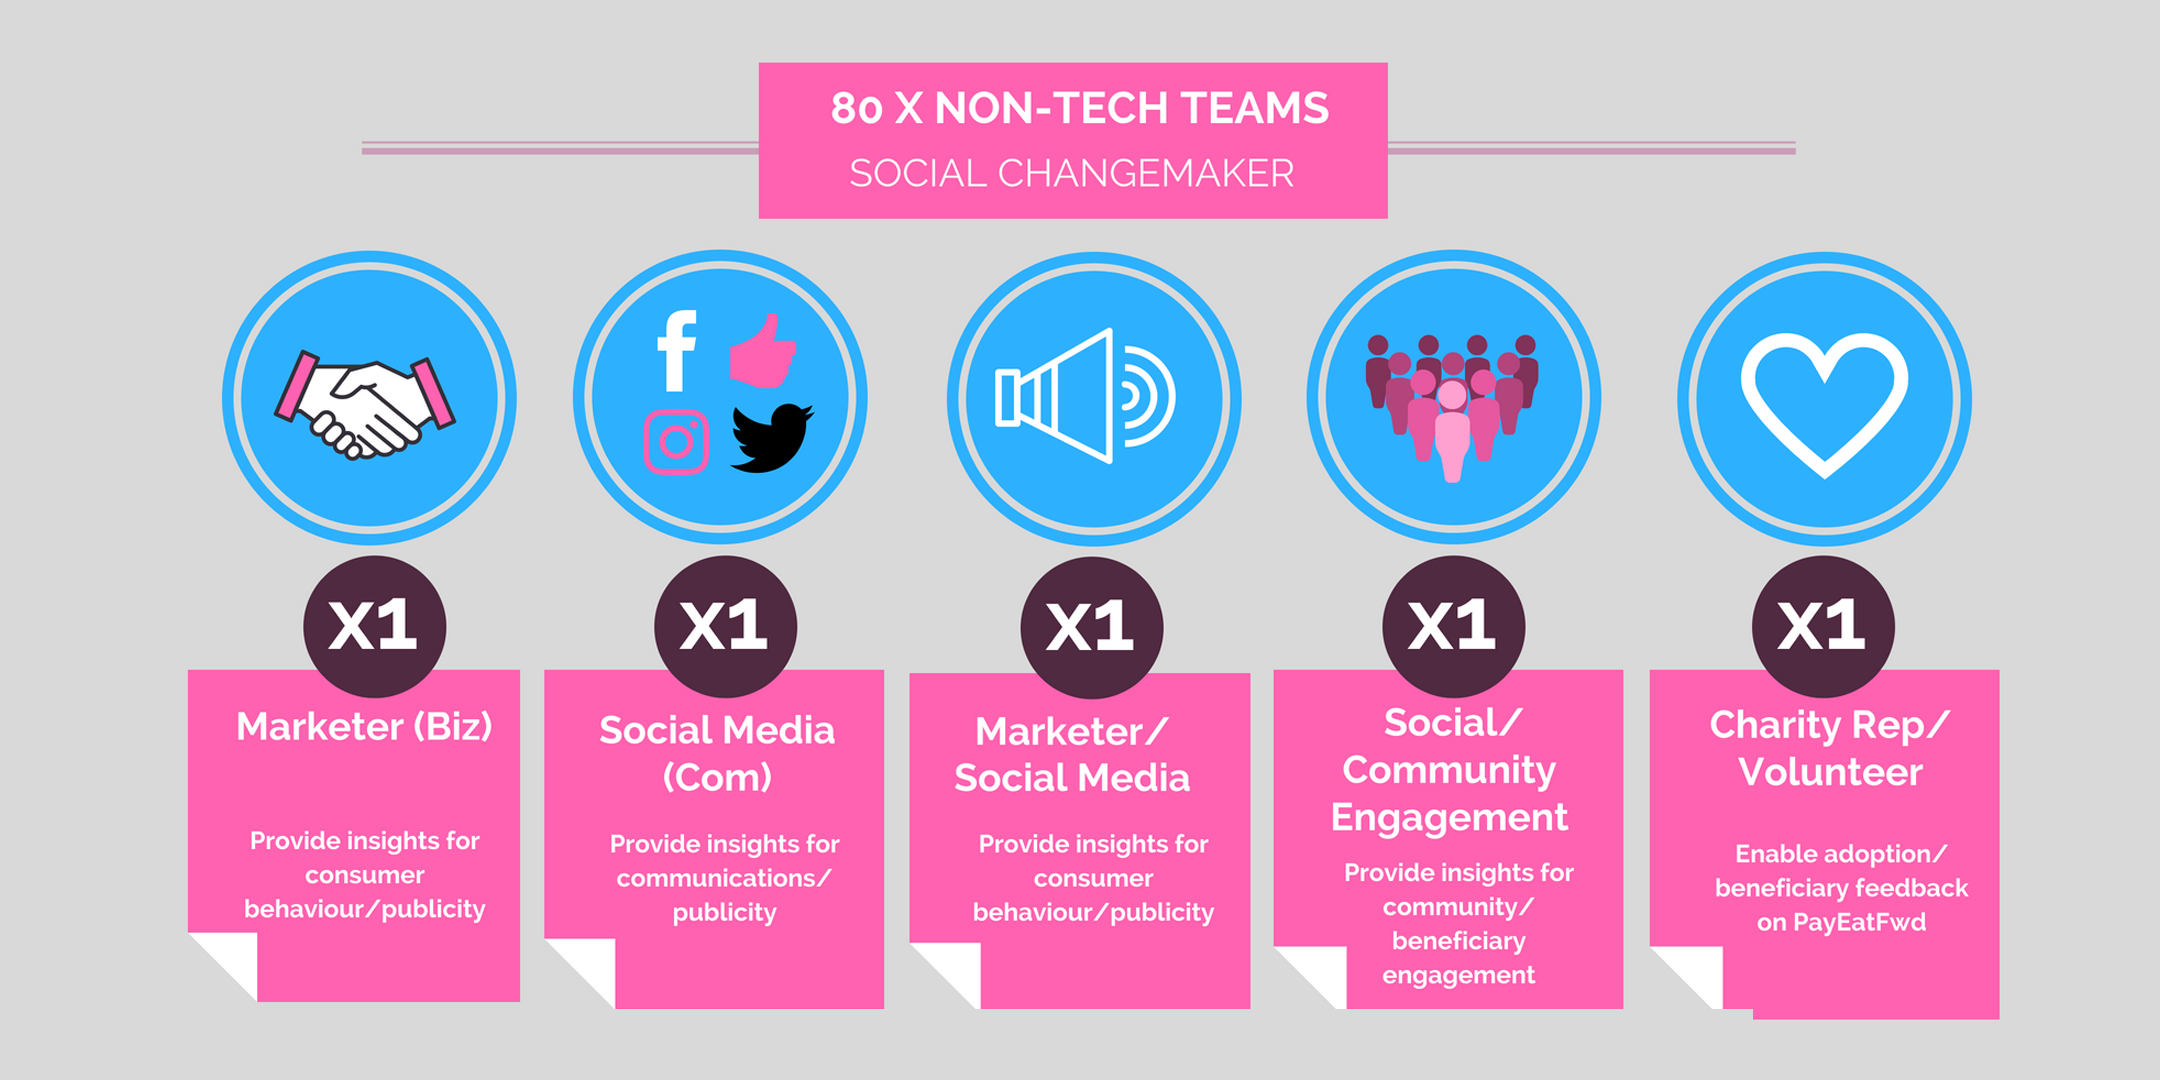 social-changemarker-non-tech